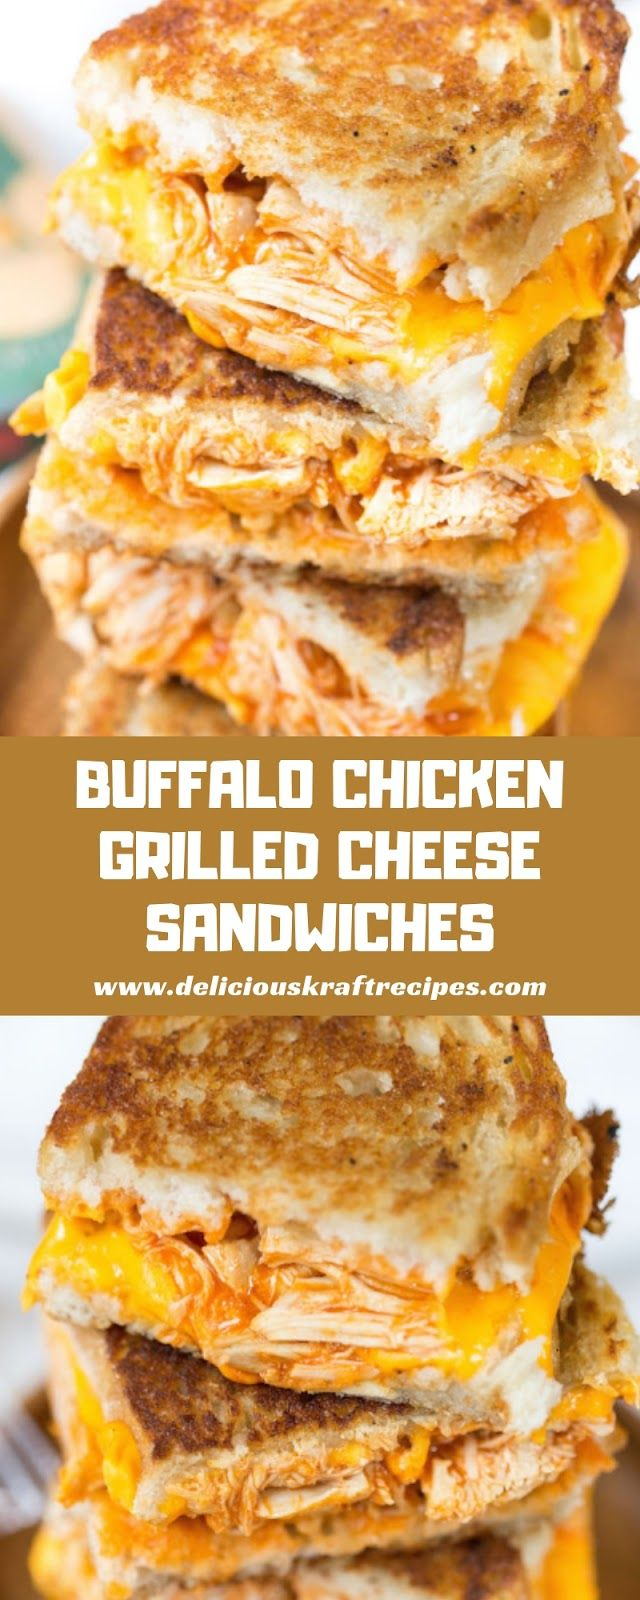 Delicious Kraft Recipes: BUFFALO CHICKEN GRILLED CHEESE SANDWICHES #sandwichrecipes